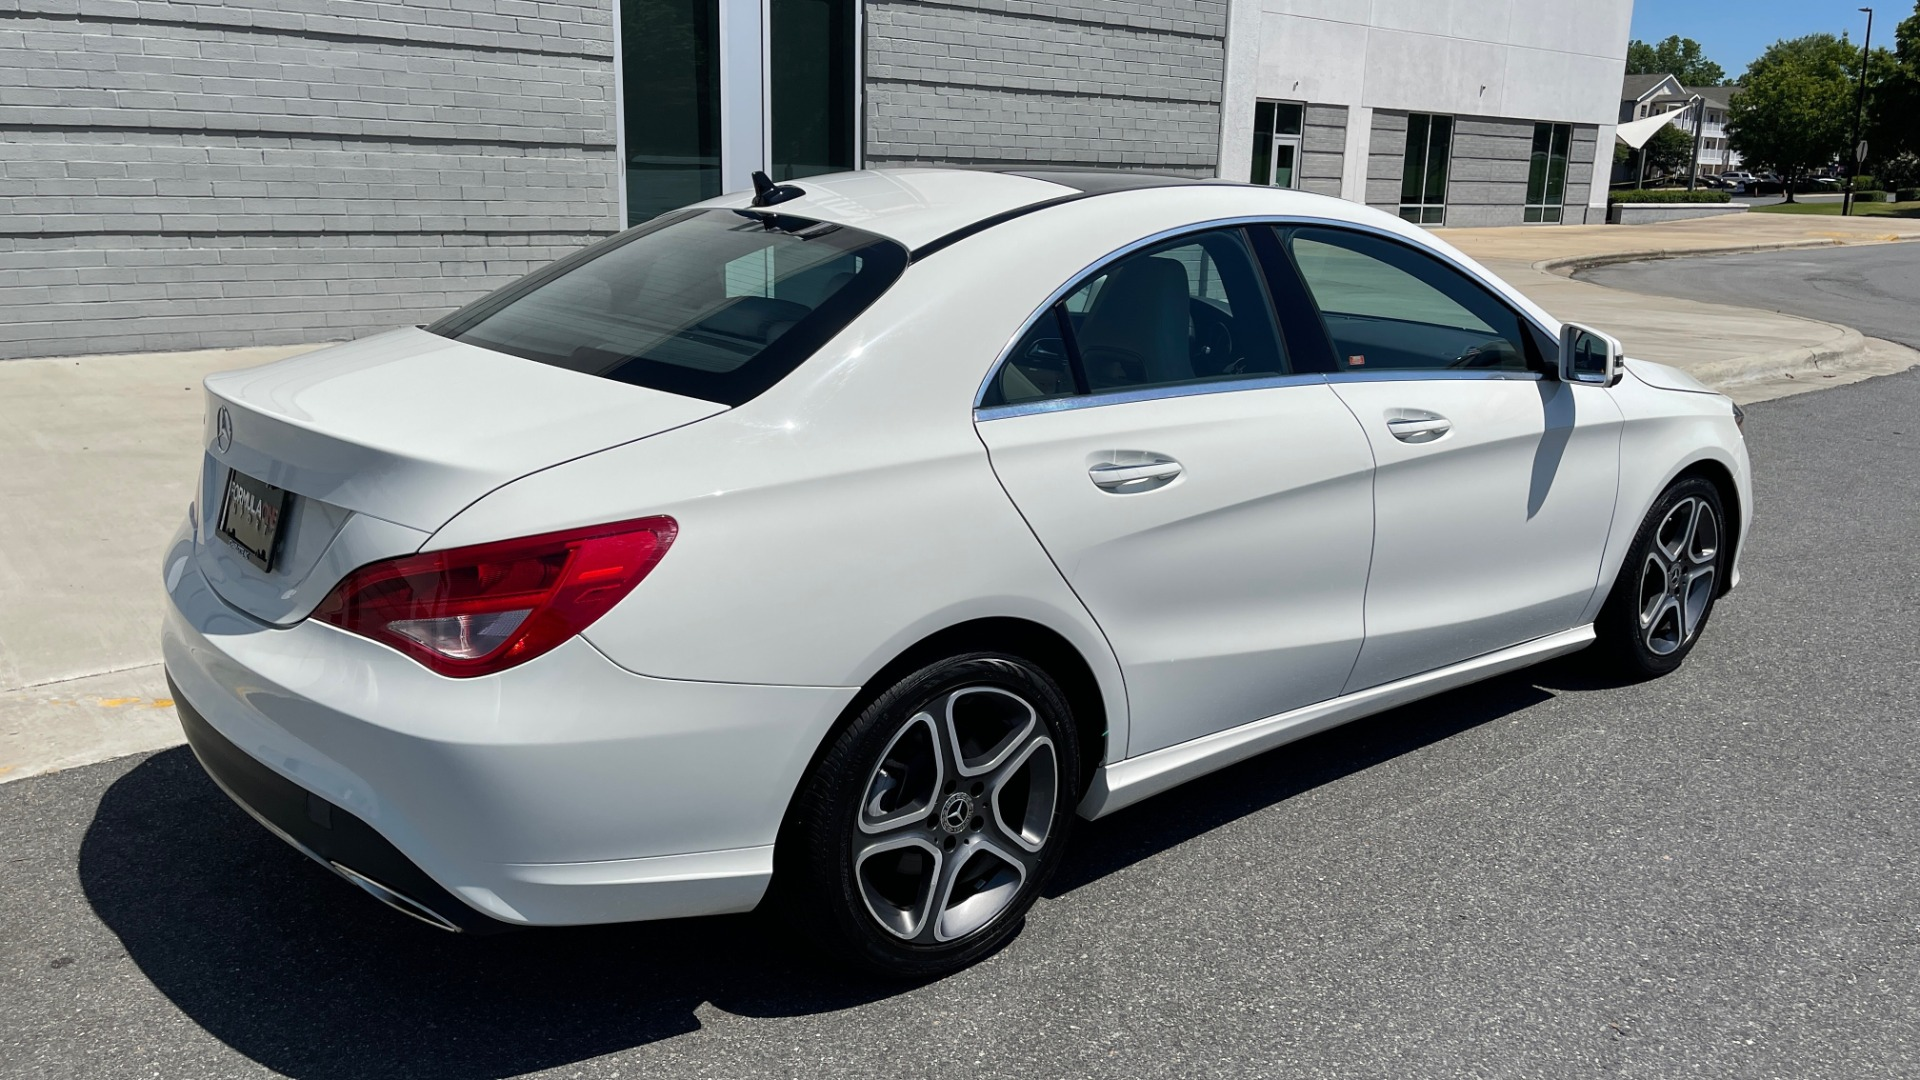 Used 2018 Mercedes-Benz CLA 250 PREMIUM / CONV PKG / APPLE / PANO-ROOF / REARVIEW for sale $29,795 at Formula Imports in Charlotte NC 28227 2